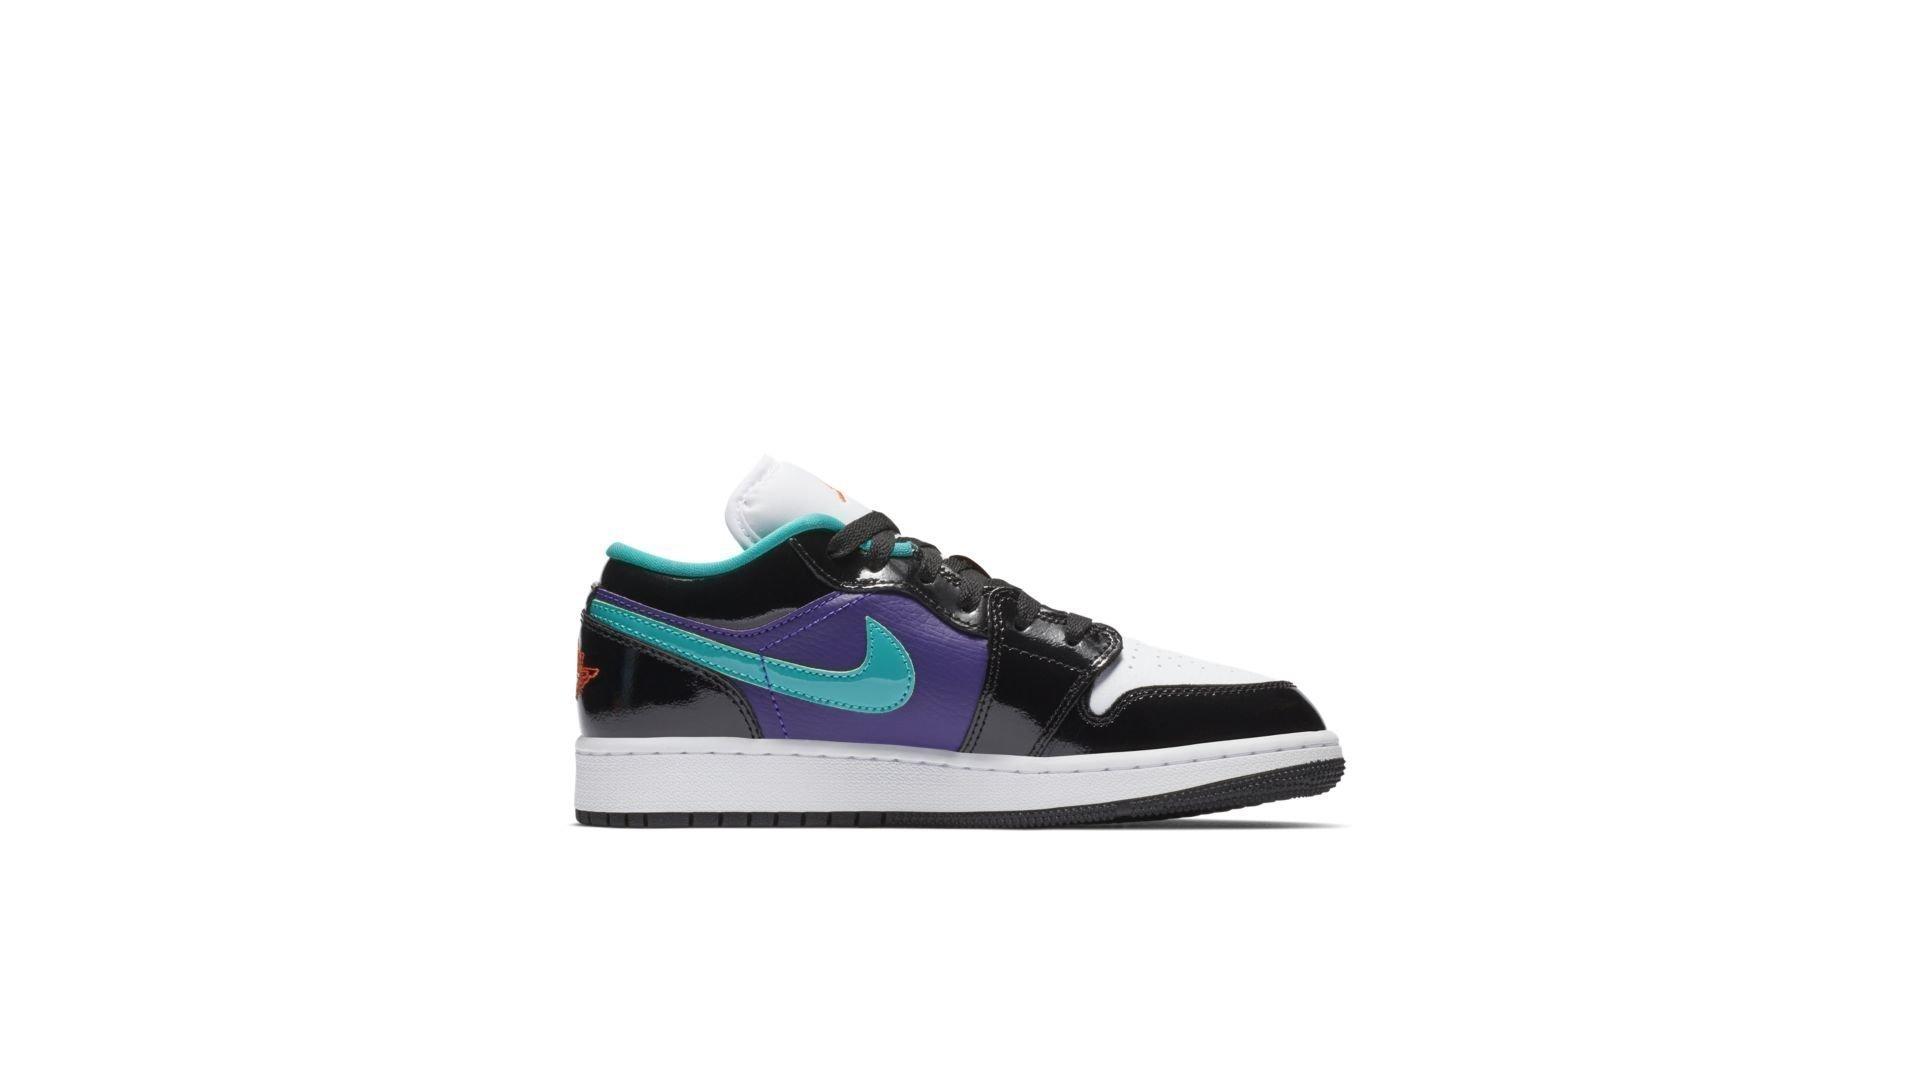 Jordan 1 Low Black Court Purple Turbo Green (GS) (553560-035)